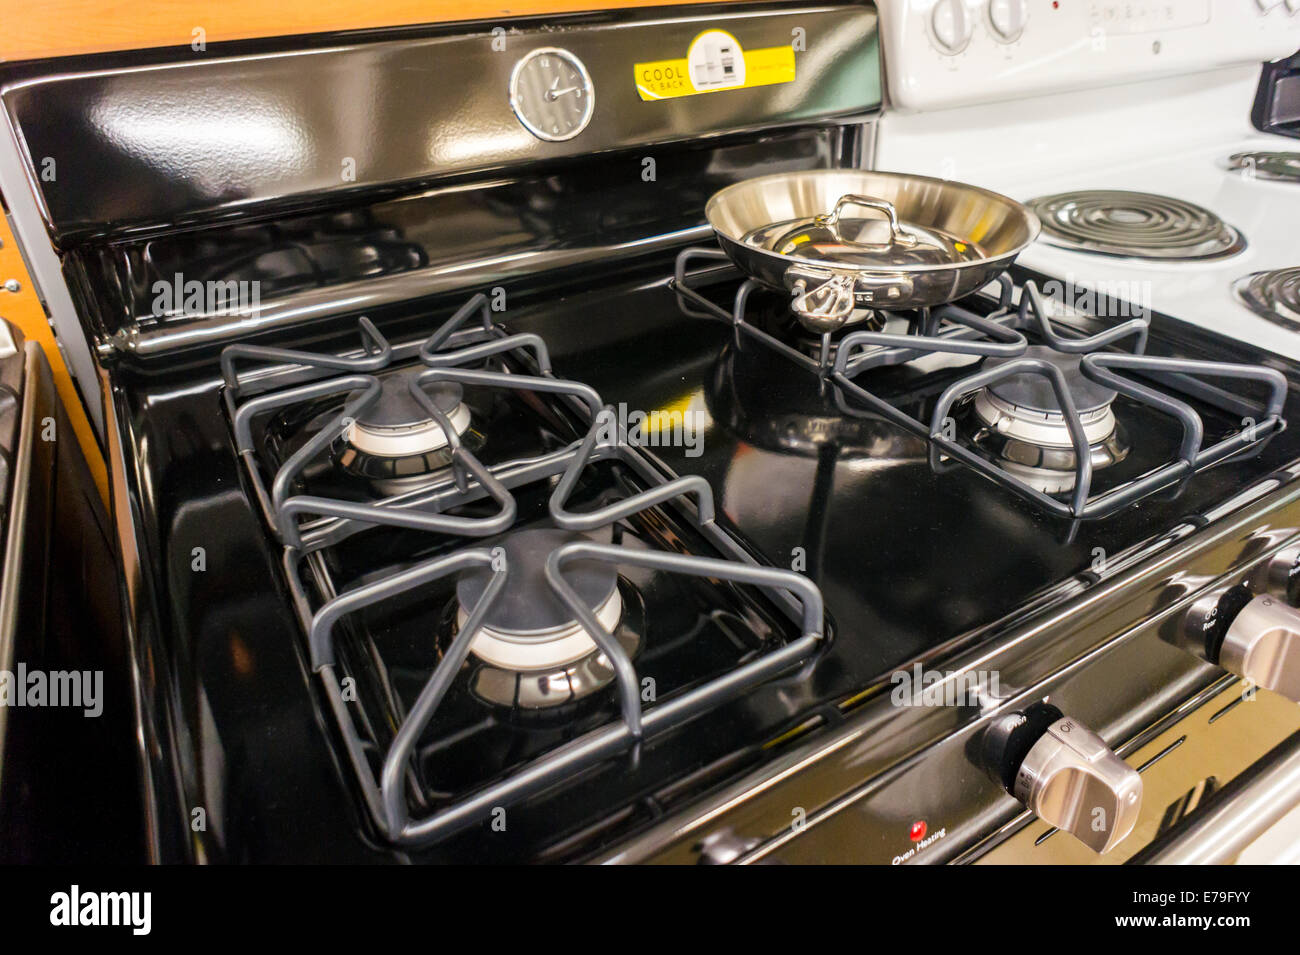 A General Electric Gas Stove In A Home Depot In New York Stock Photo Alamy